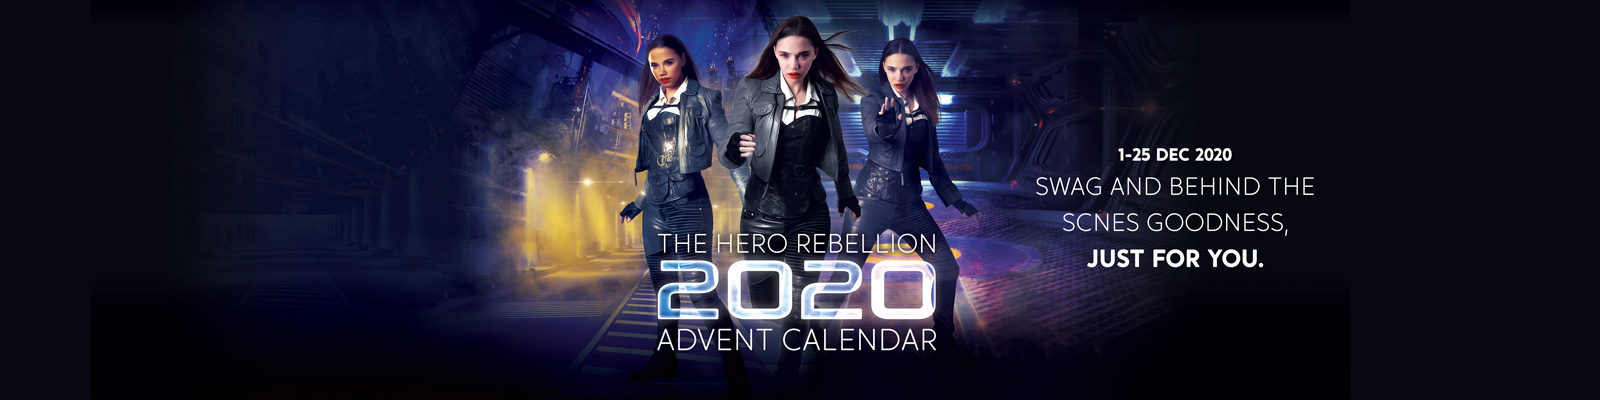 The Hero Rebellion 2020 Advent Calendar. 1-25 Dec 2020. Swag and behind the scenes goodness, just for you.